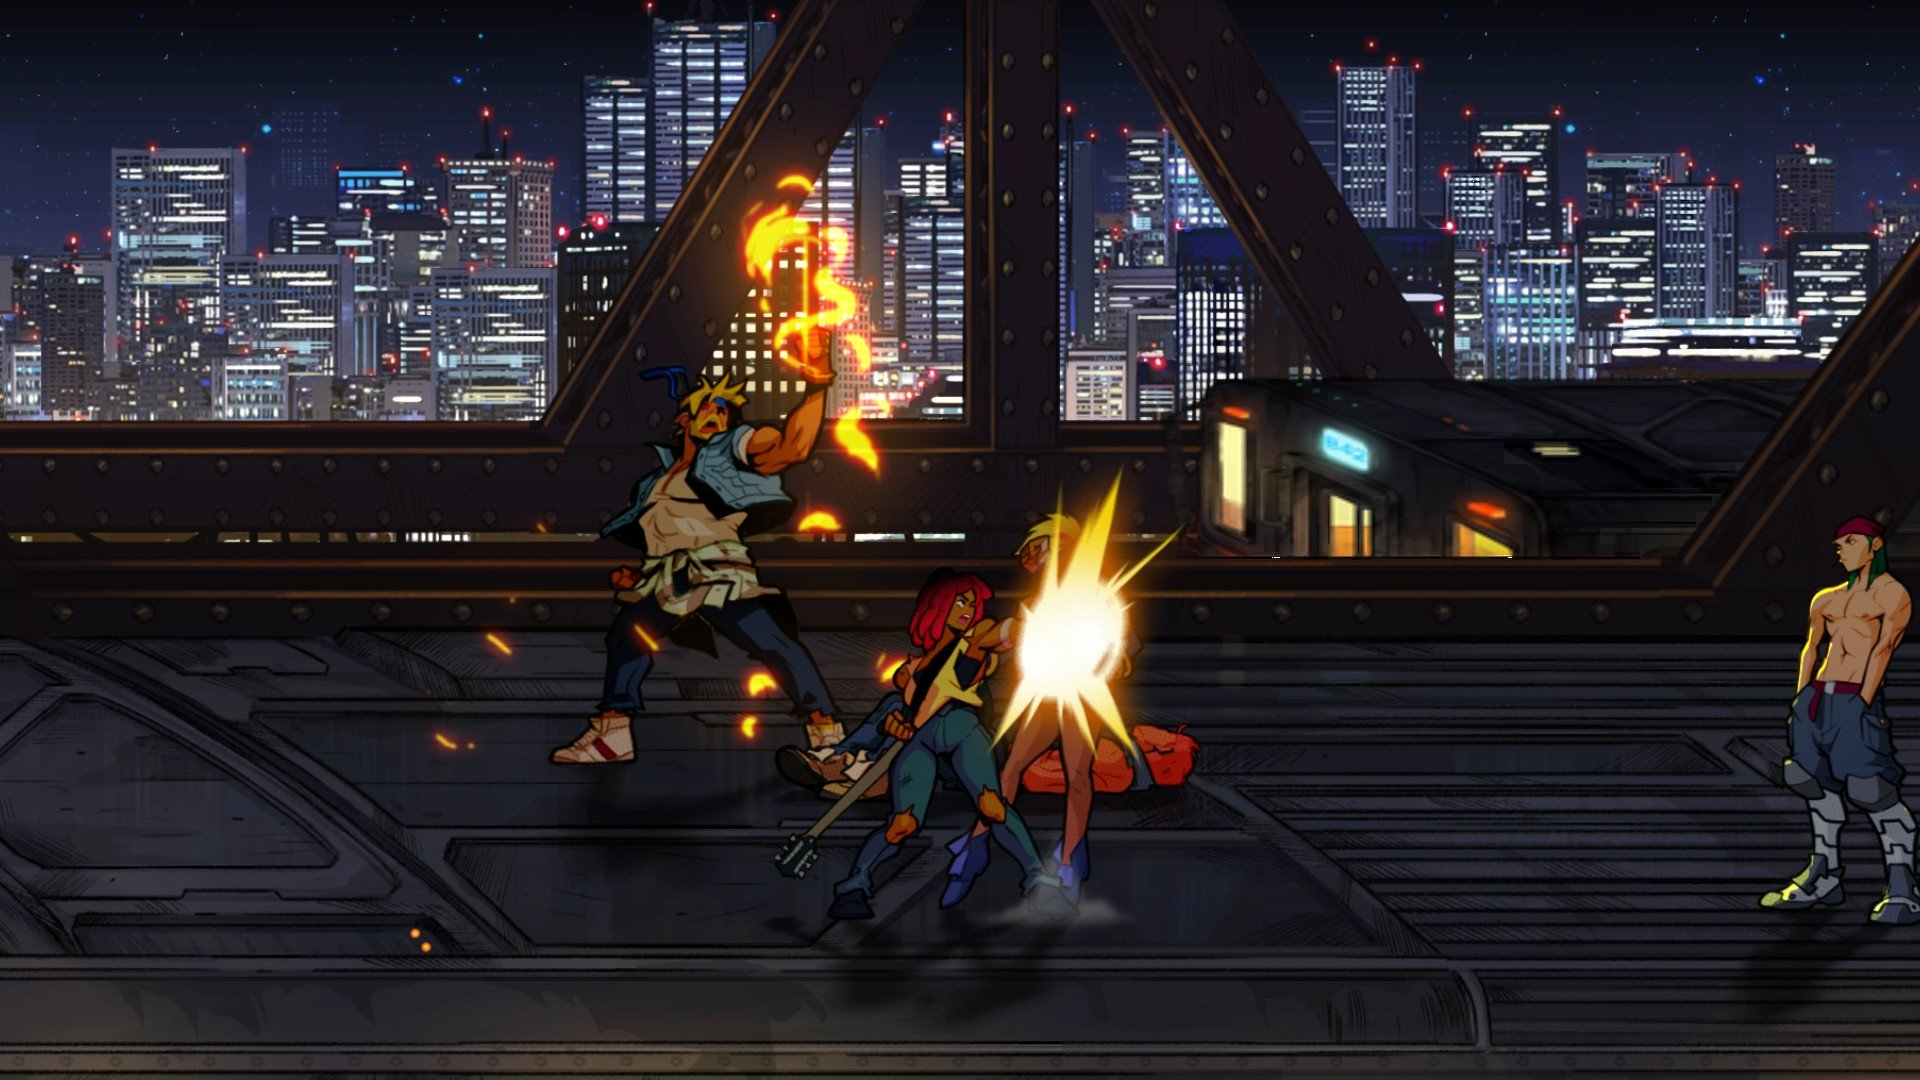 Screenshot for the game Streets of Rage 4 (05g-r11096) [GOG] (2020) download torrent License